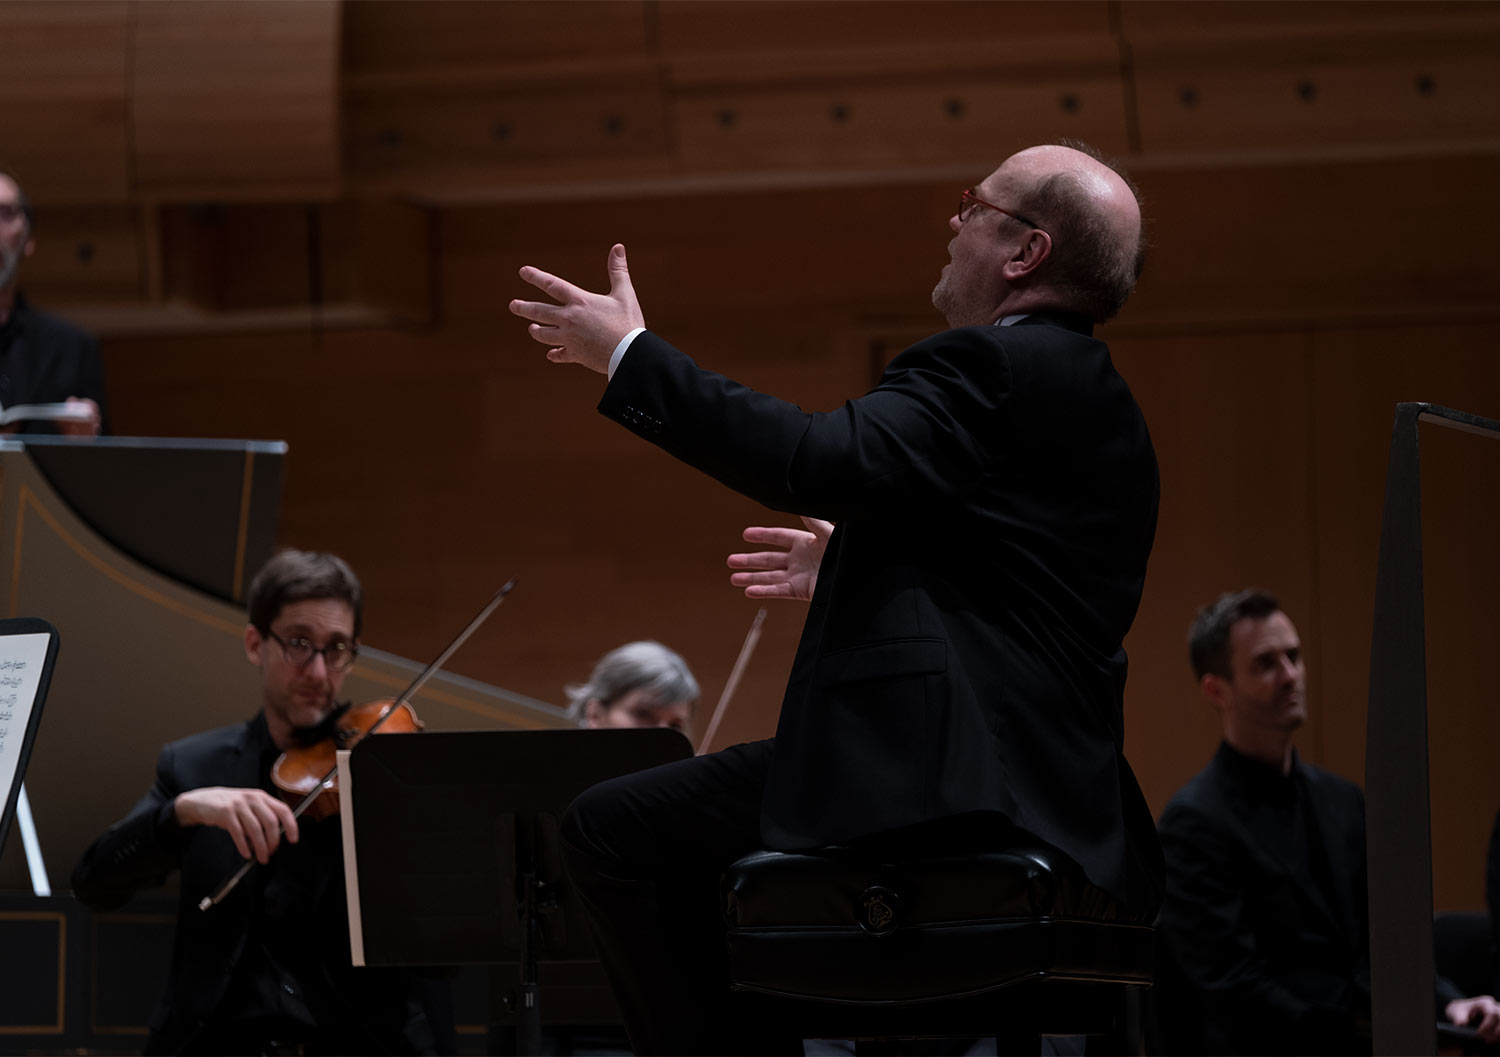 Symhony conductor directing symphony orchestra